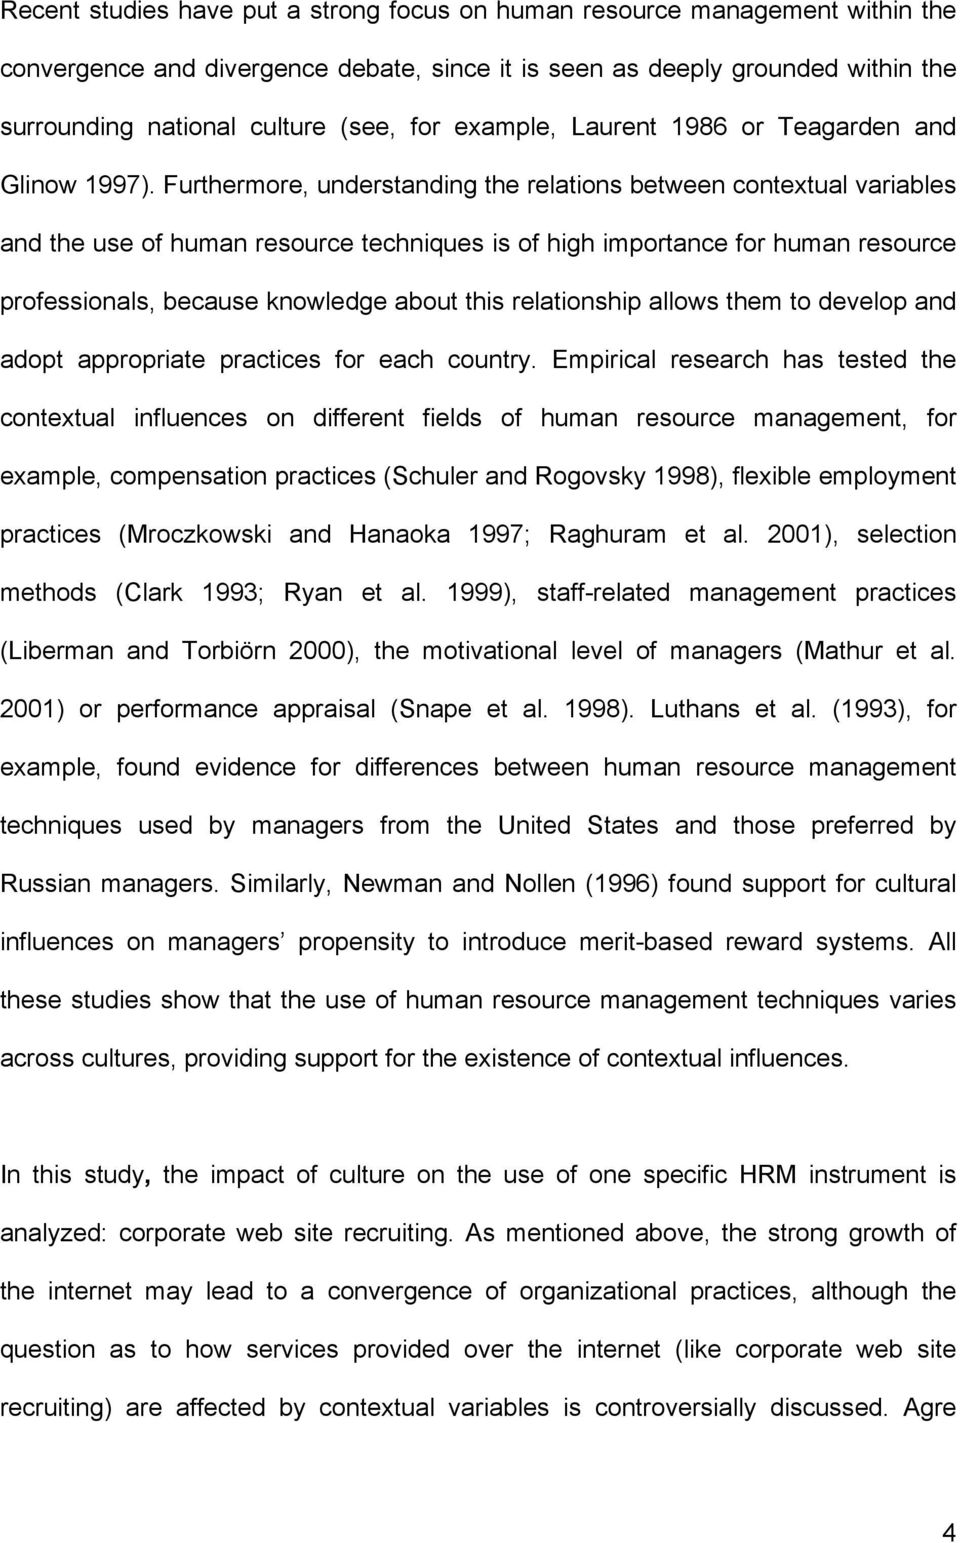 Furthermore, understanding the relations between contextual variables and the use of human resource techniques is of high importance for human resource professionals, because knowledge about this